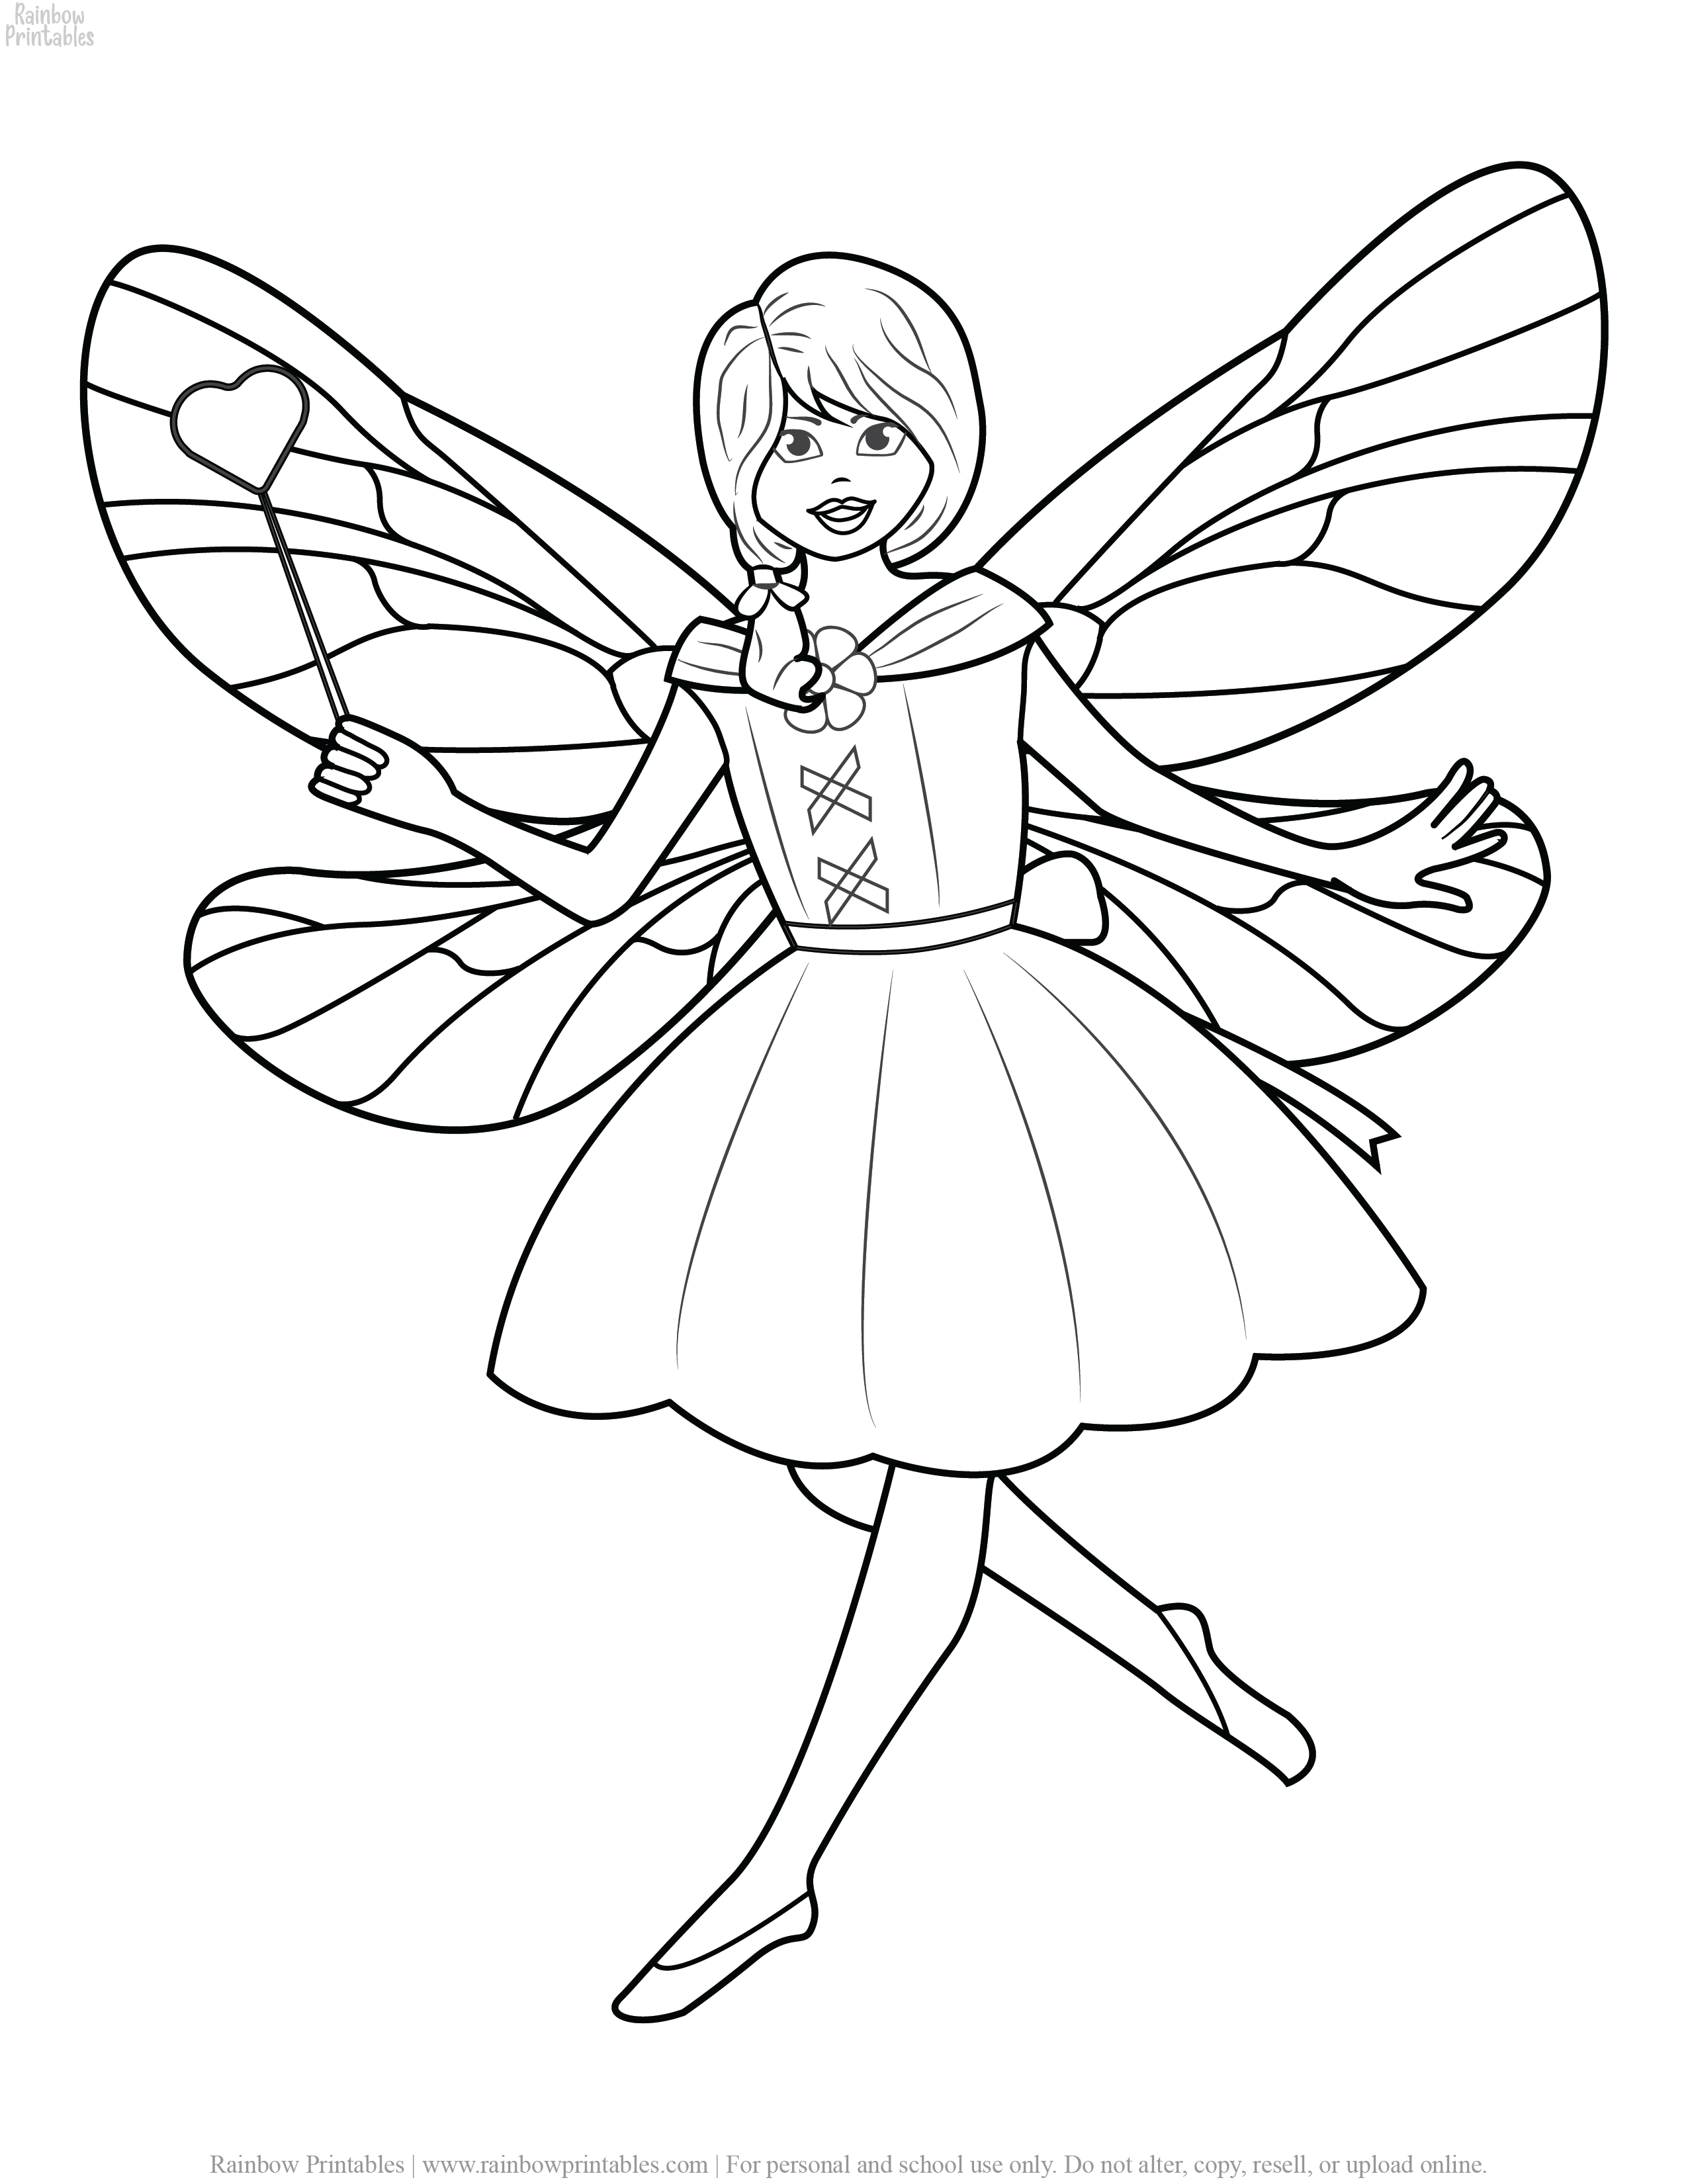 26 Pretty Fairy Kids Coloring Pages For Girls Free Rainbow Printables